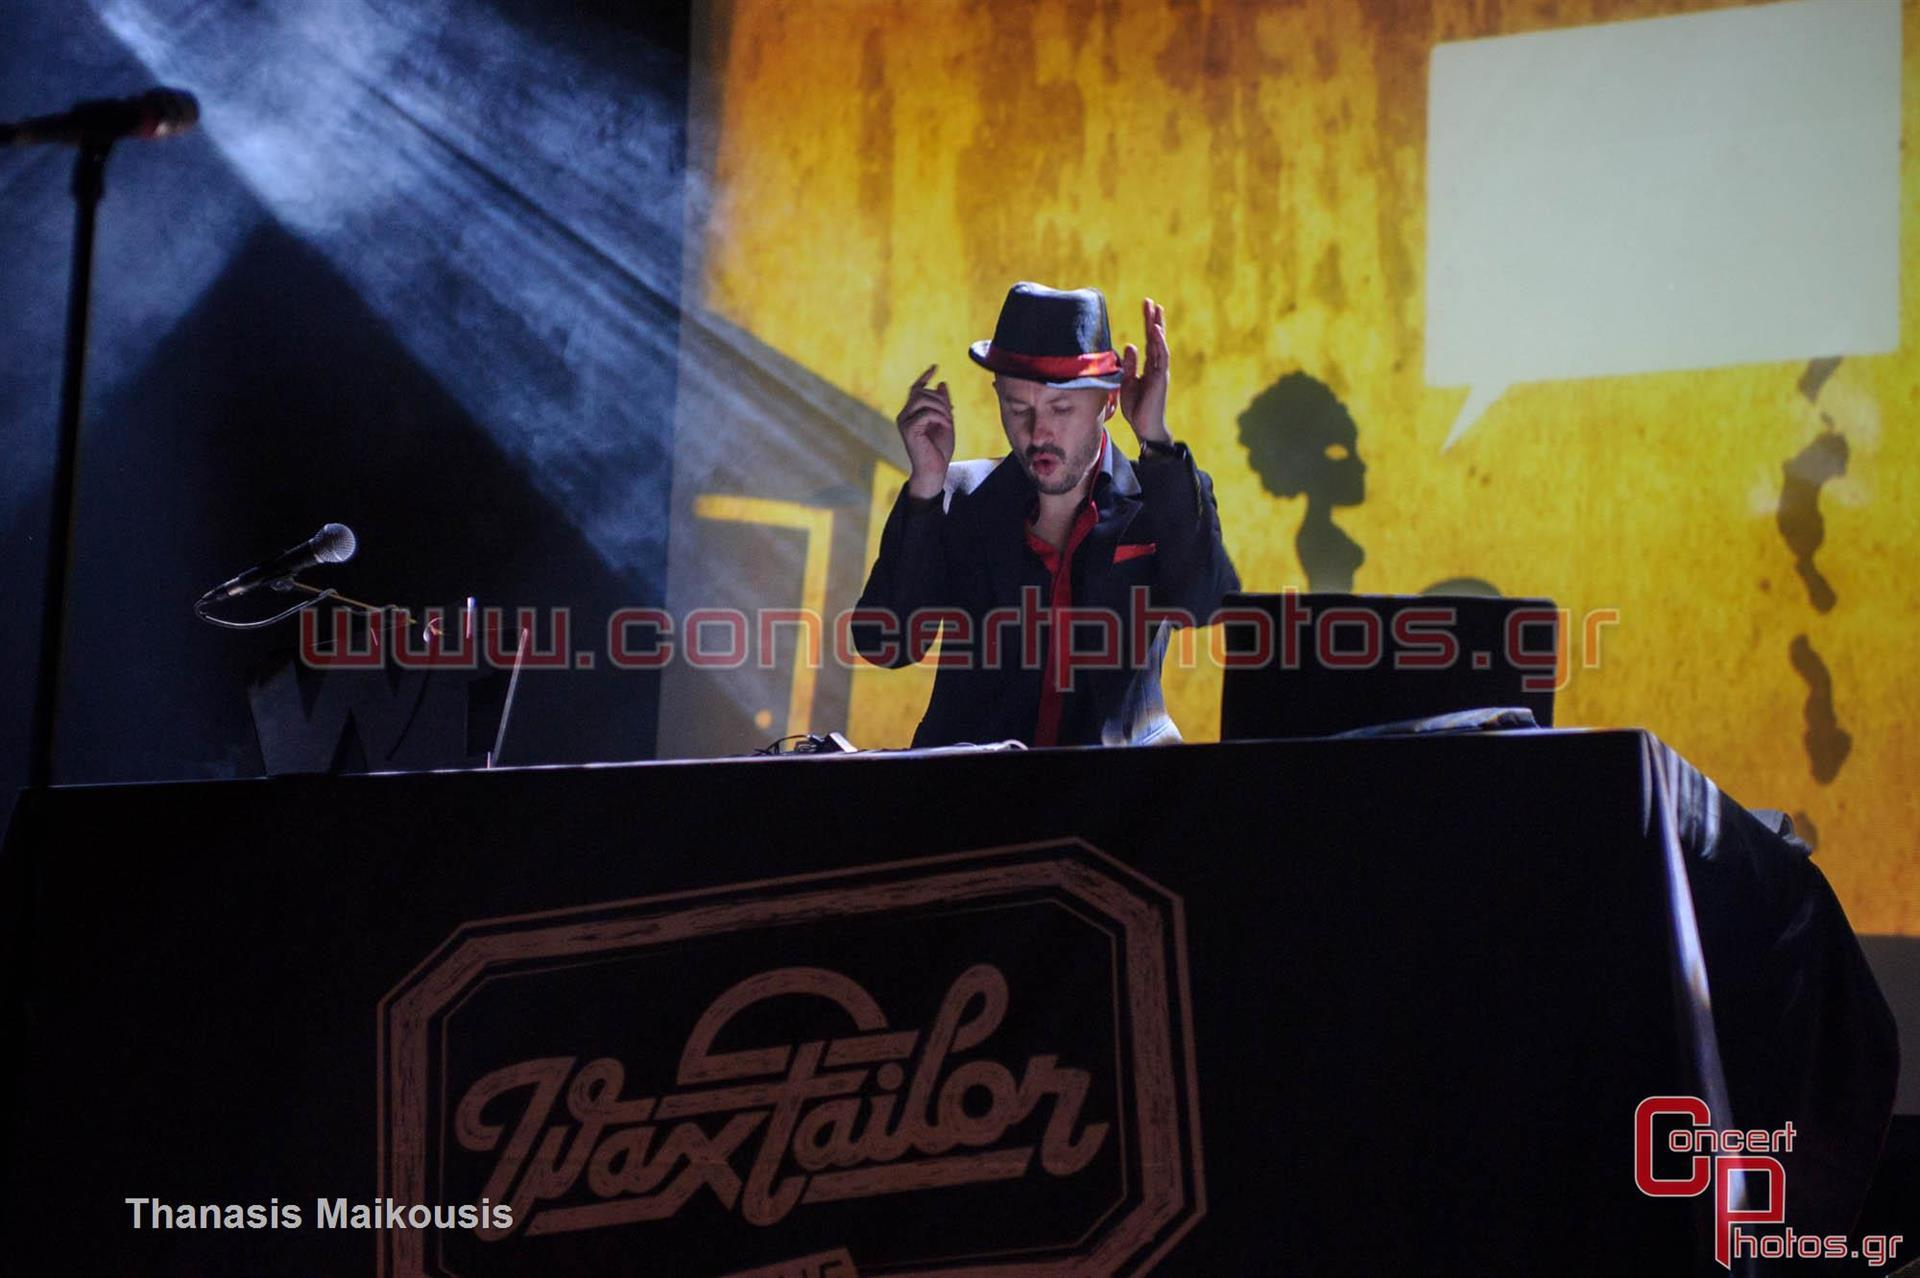 Wax Tailor - photographer: Thanasis Maikousis - ConcertPhotos-7605